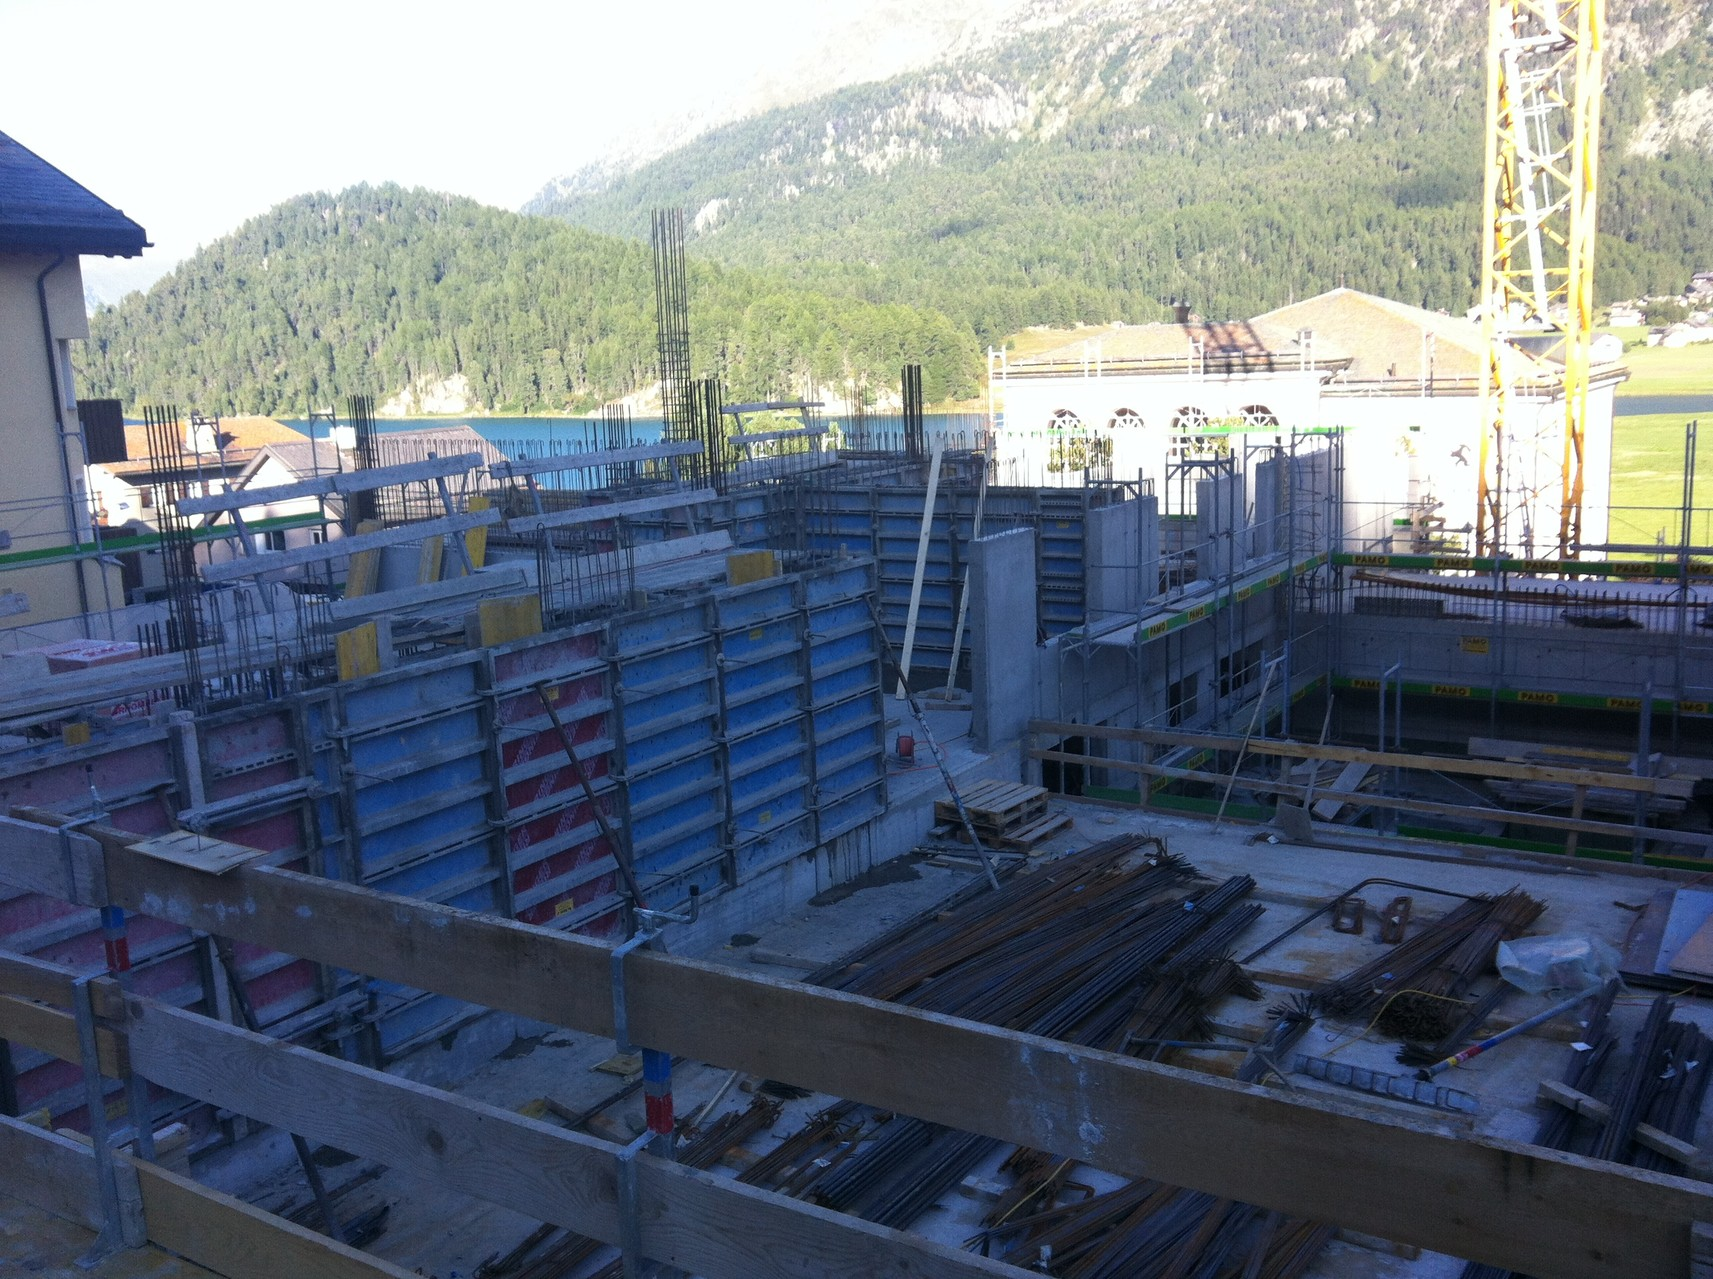 Baustelle September 2013